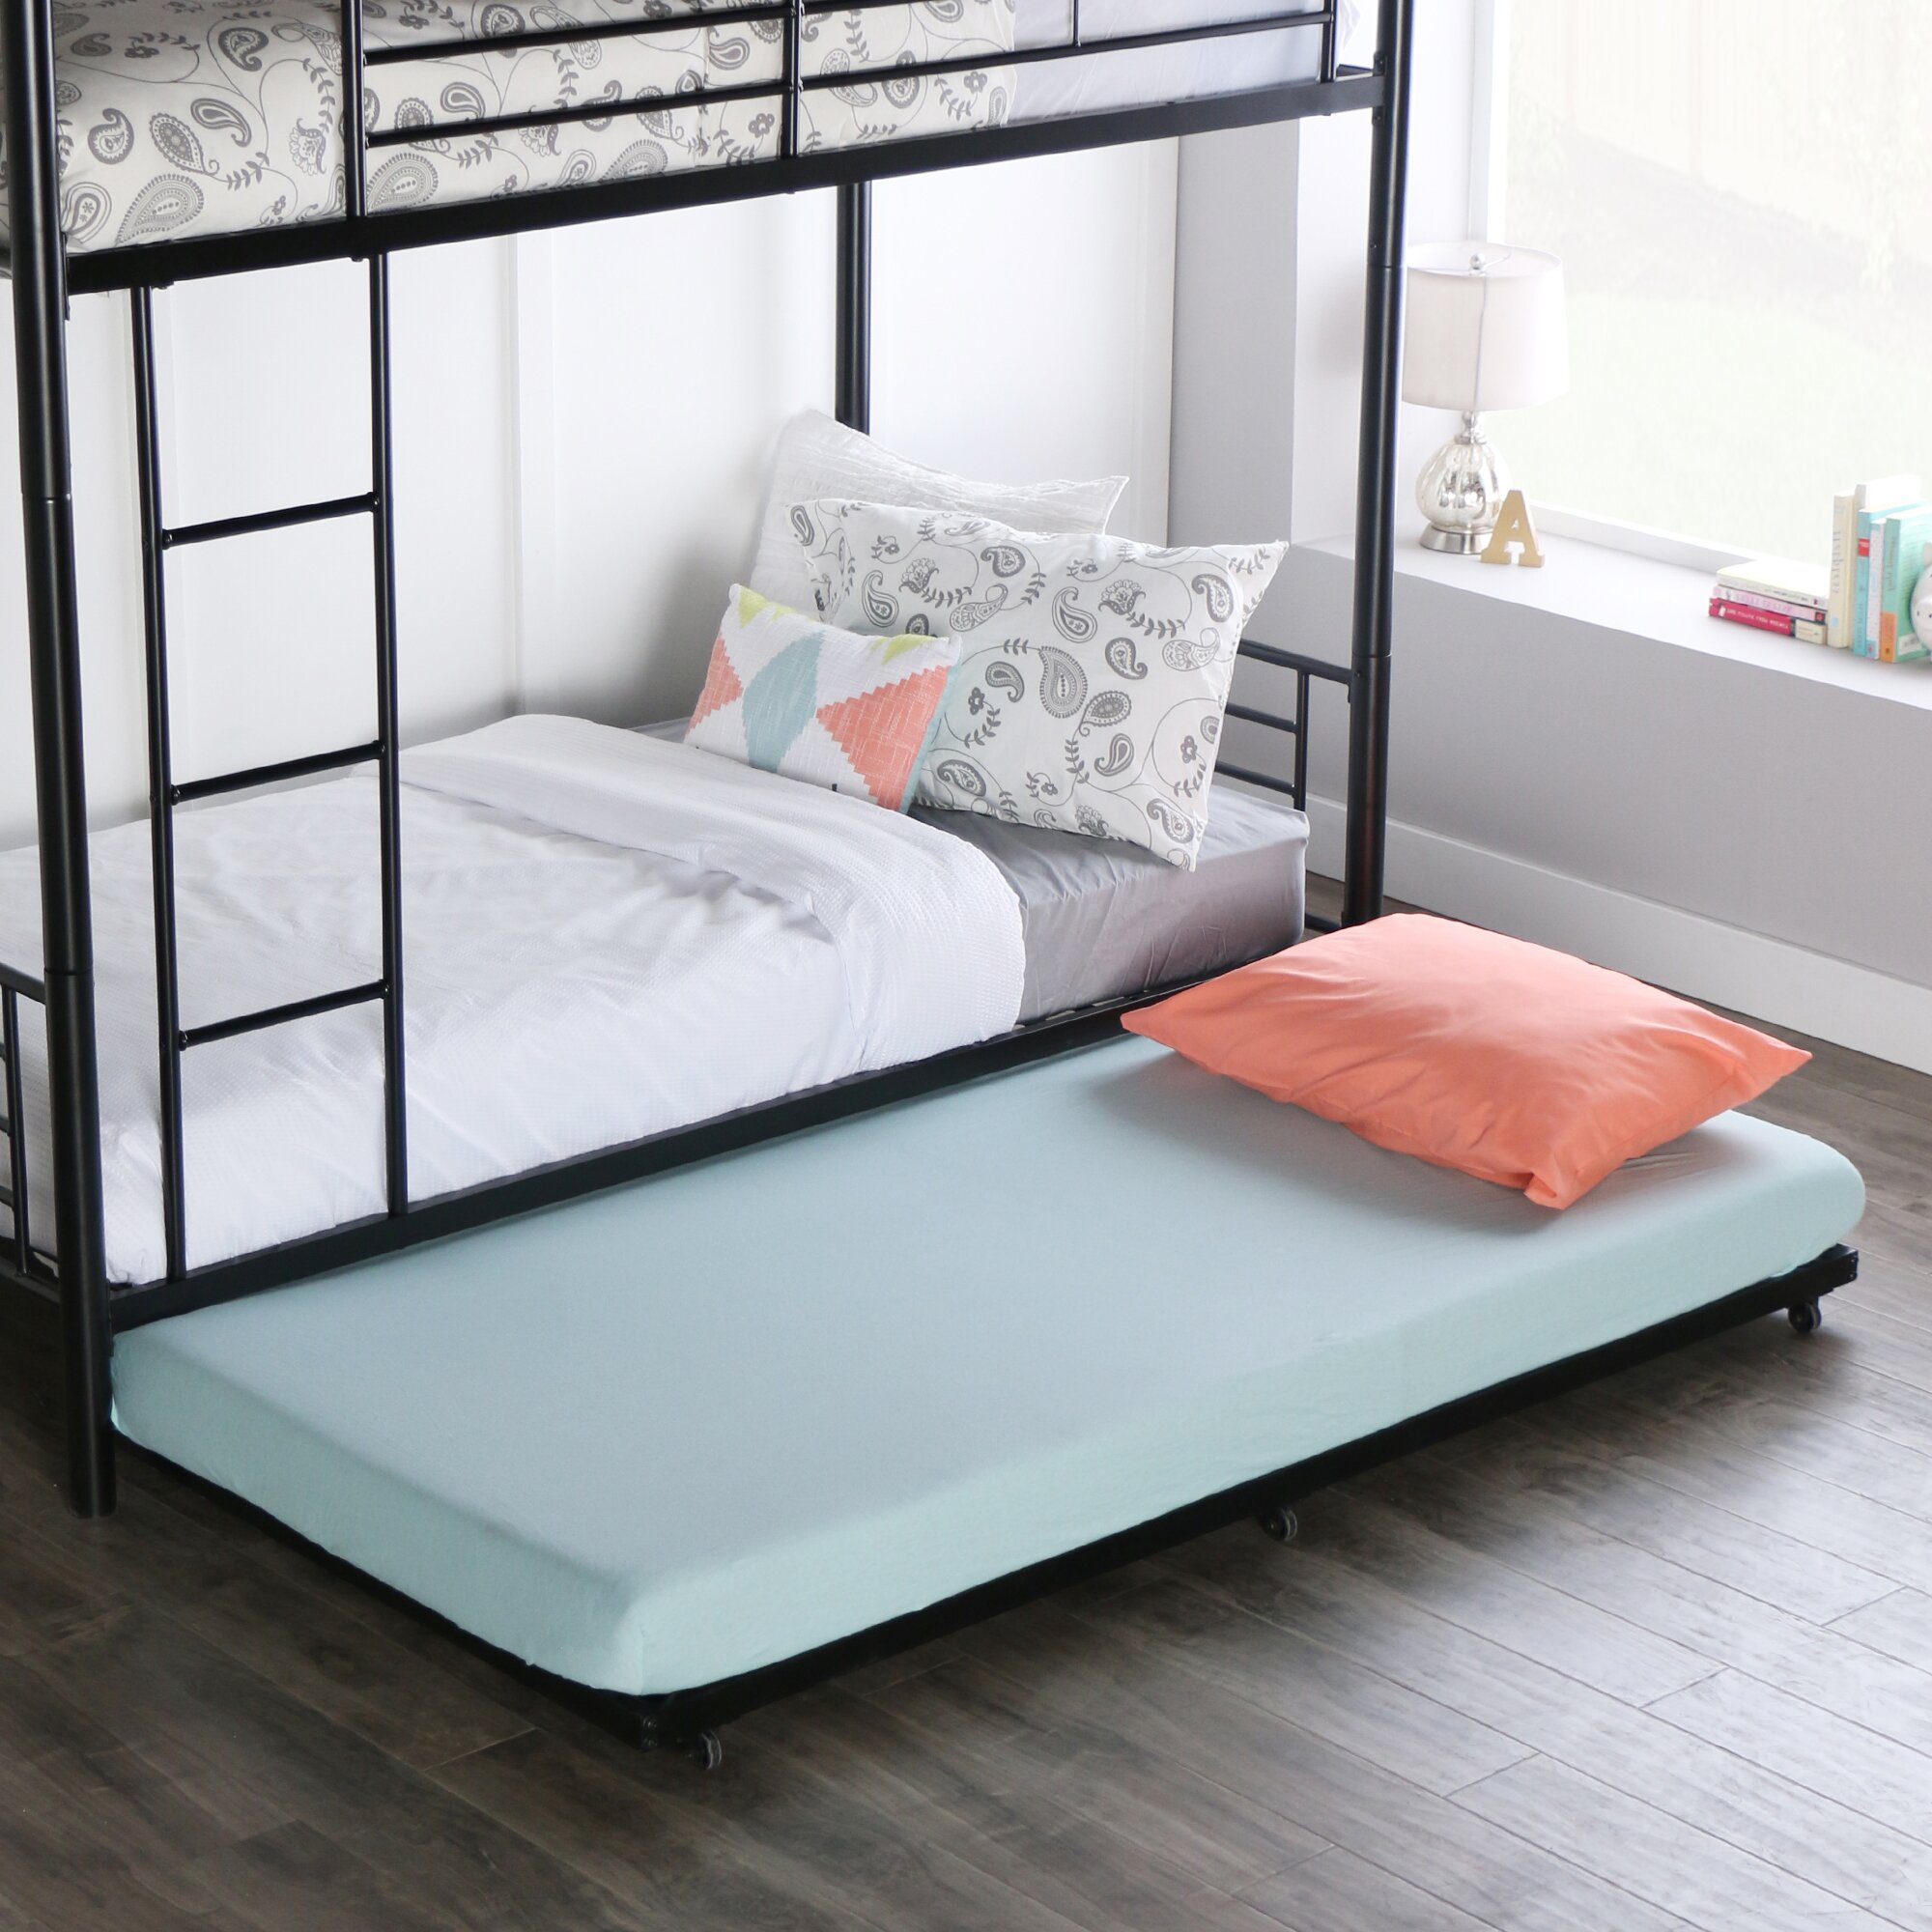 Home Loft Concepts Twin Roll Out Trundle Bed Frame Reviews Wayfair